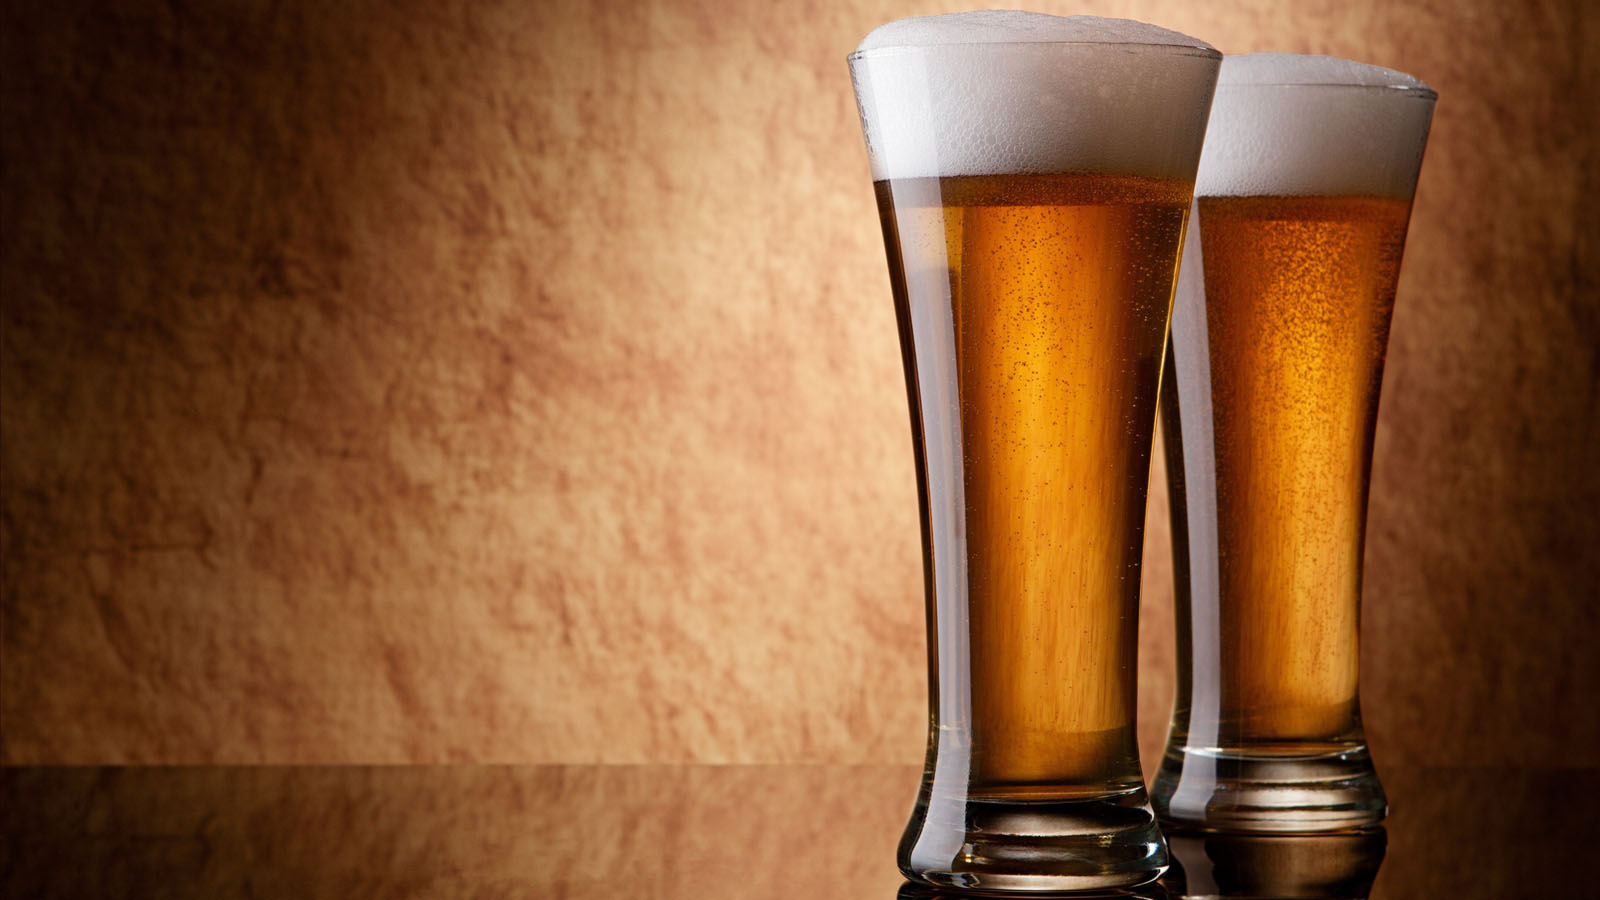 Free Download Beer Glasses Two Hd Wallpaper Pictures To Pin